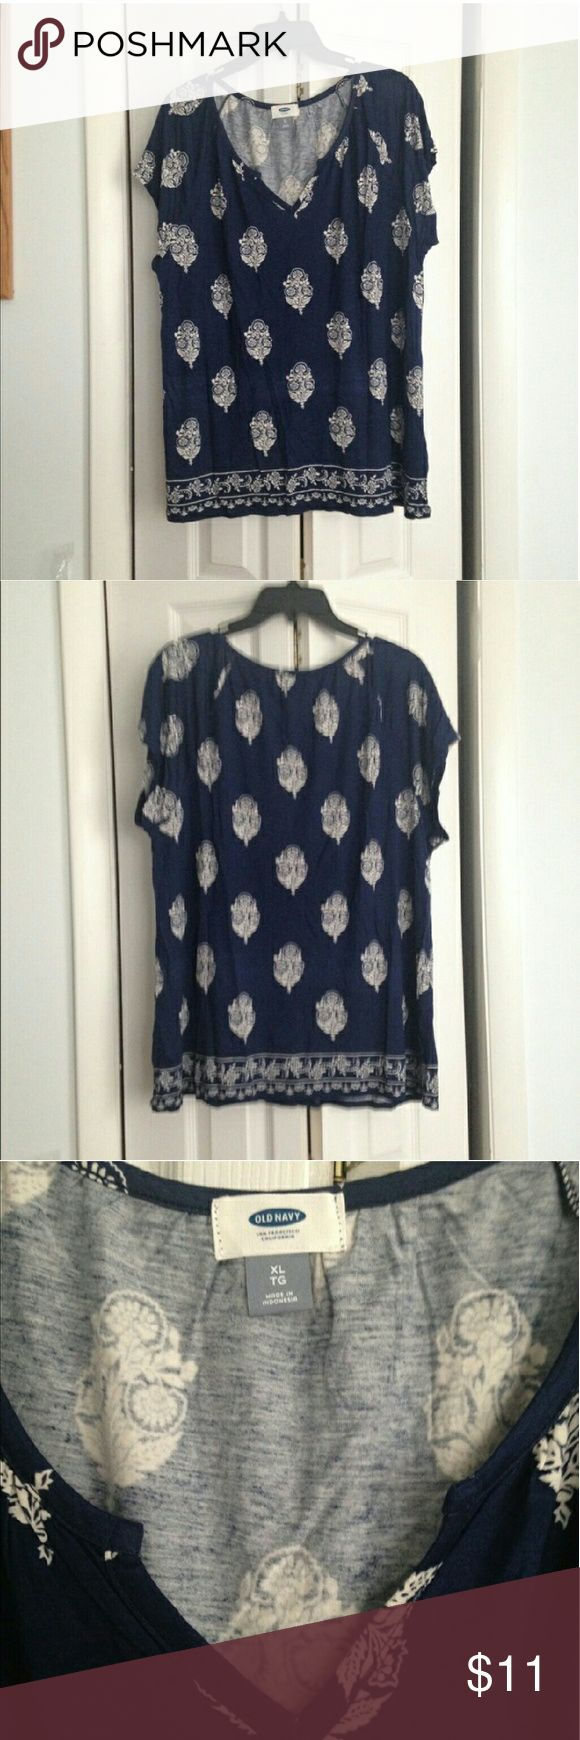 NWOT Old Navy short sleeve top! Never worn! Navy Blue and white design, v-neck, light weight and perfect for summer.  True to size and no flaws! Old Navy Tops Blouses